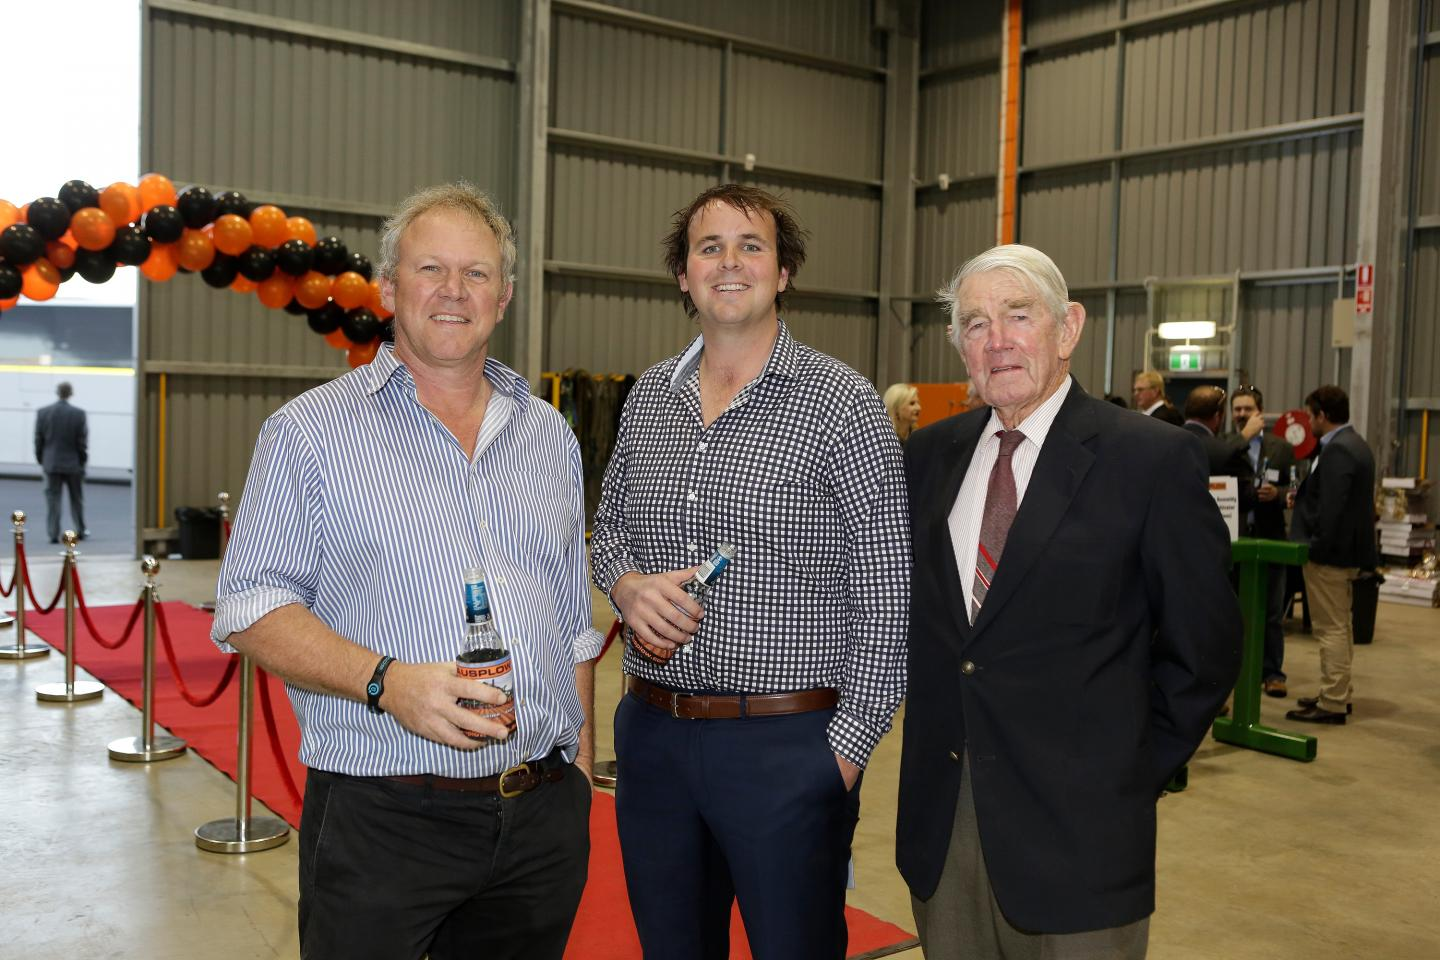 Phil Longmire (left), Beaumont, Tom Sheridan O'Connors, Birchip, Victoria and Peter Rose, Perth.